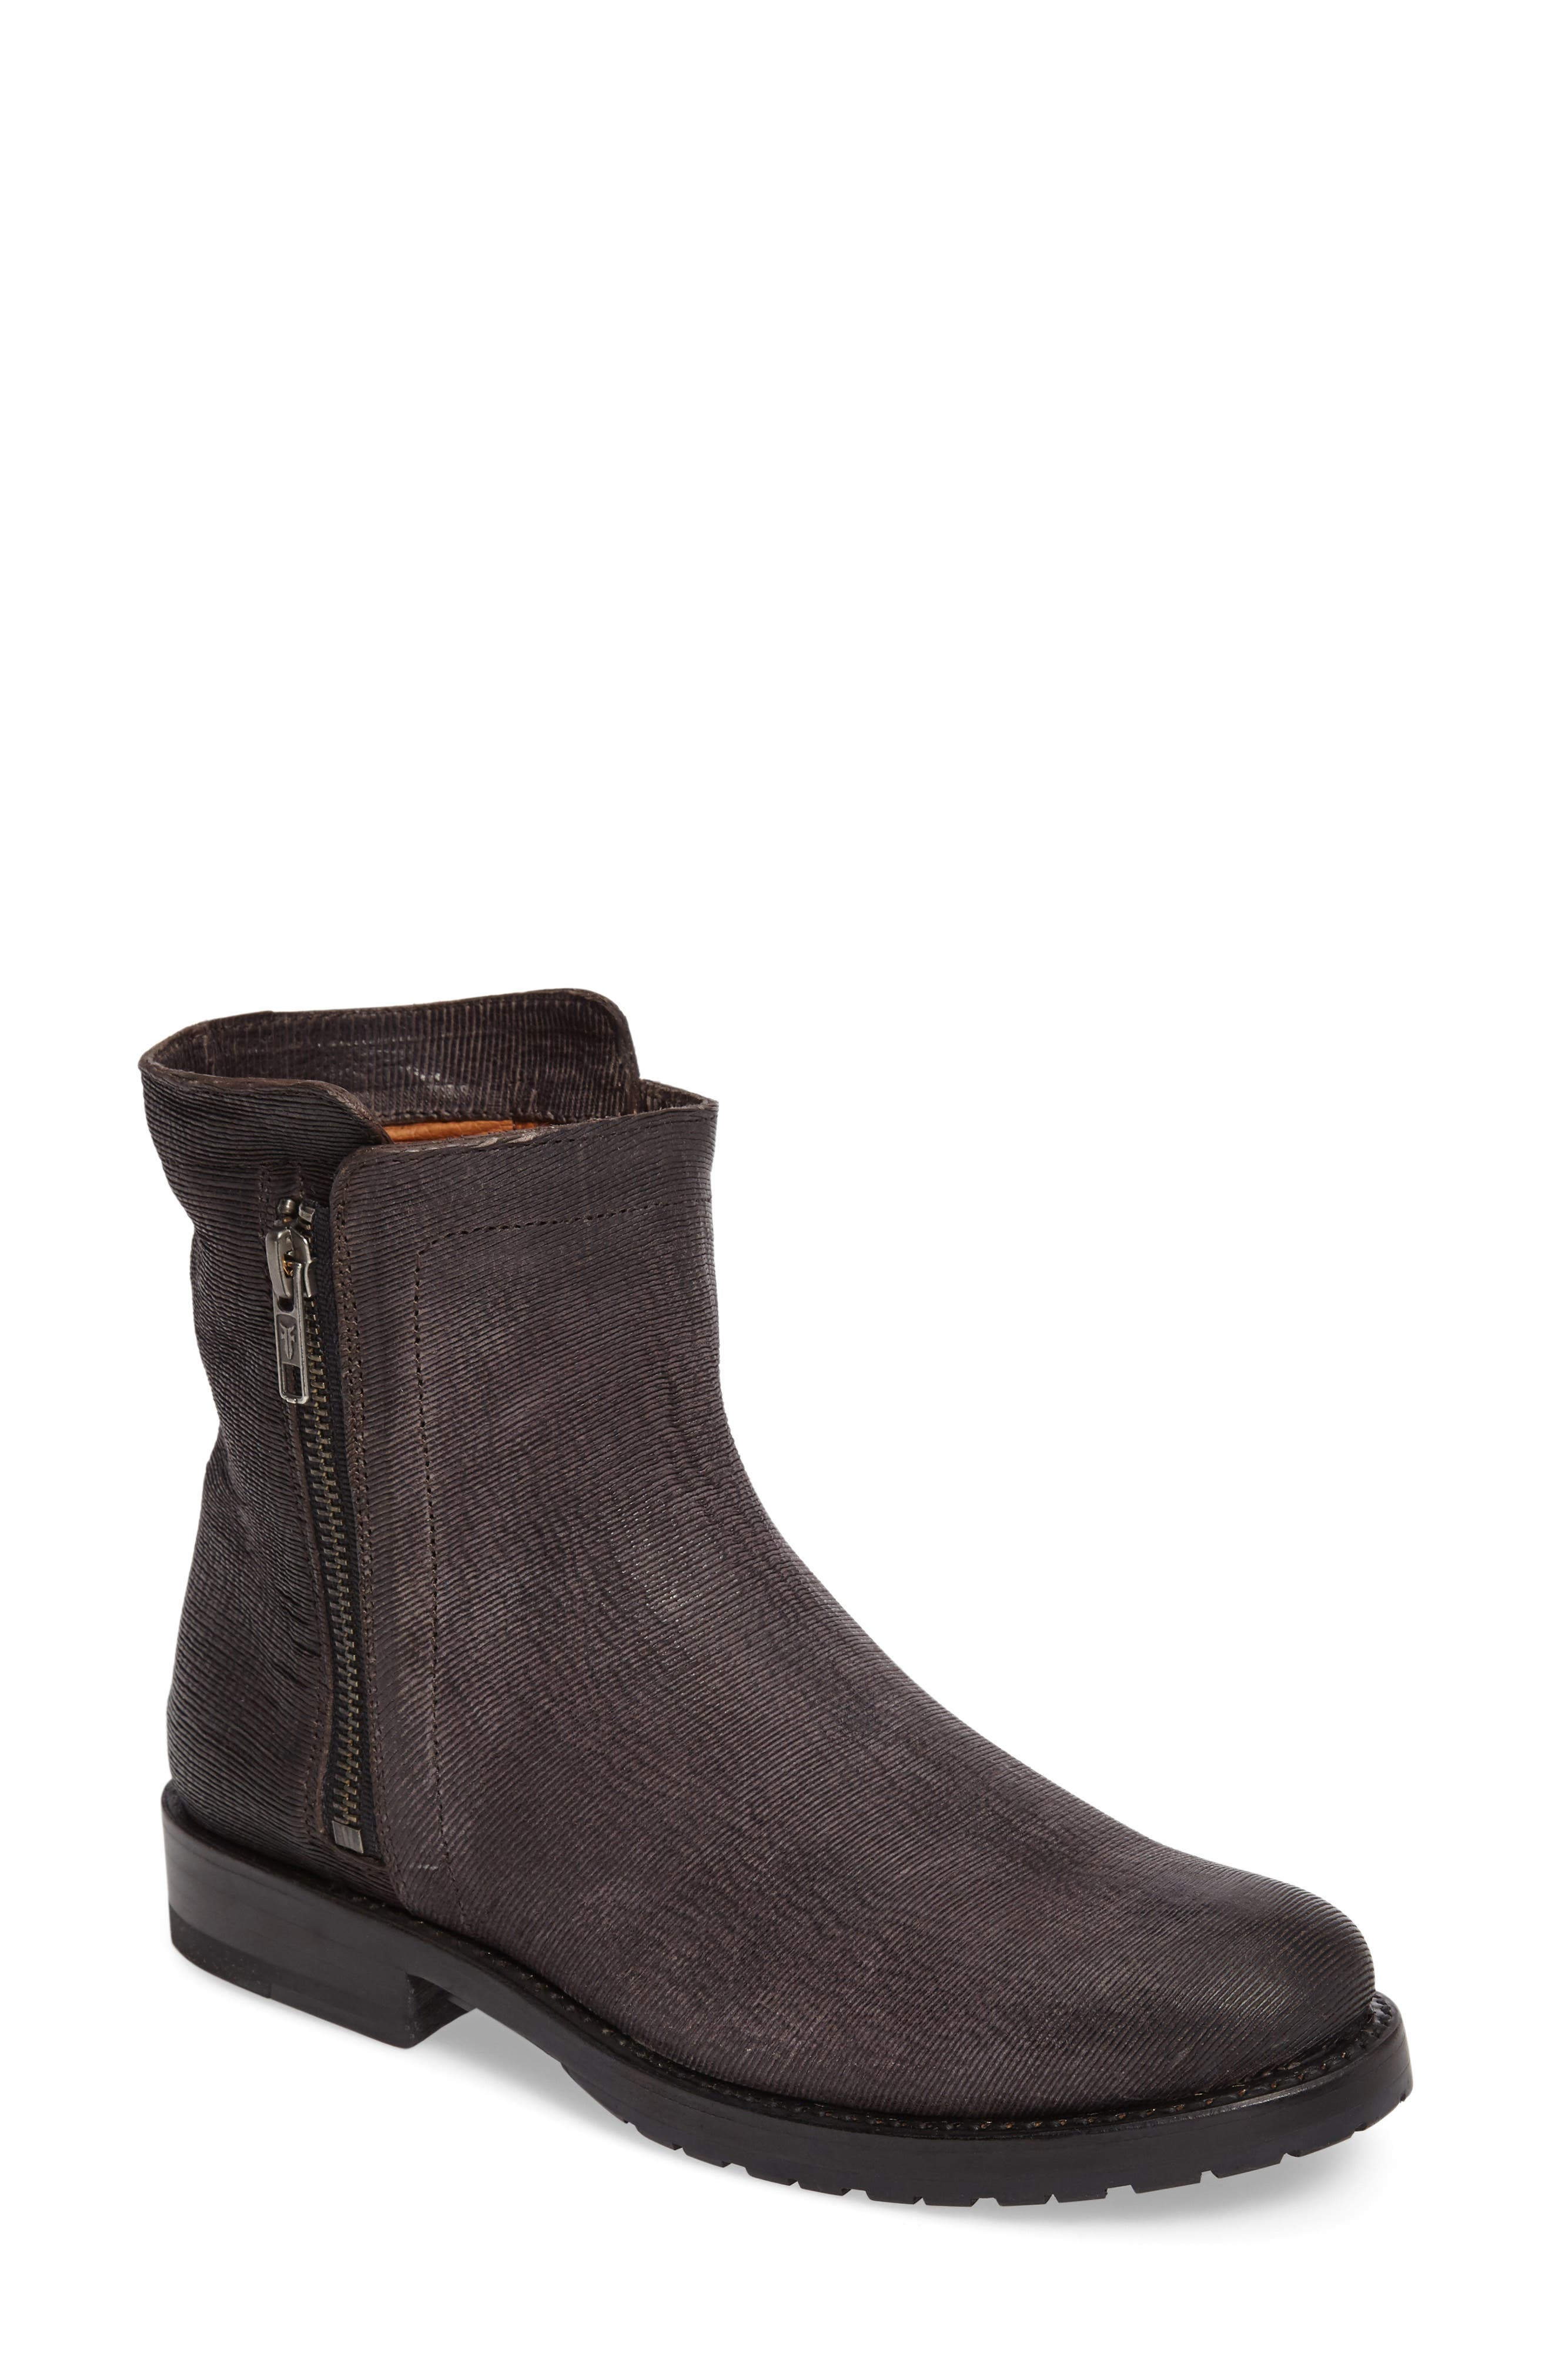 Main Image - Frye Natalie Textured Double Zip Bootie (Women)